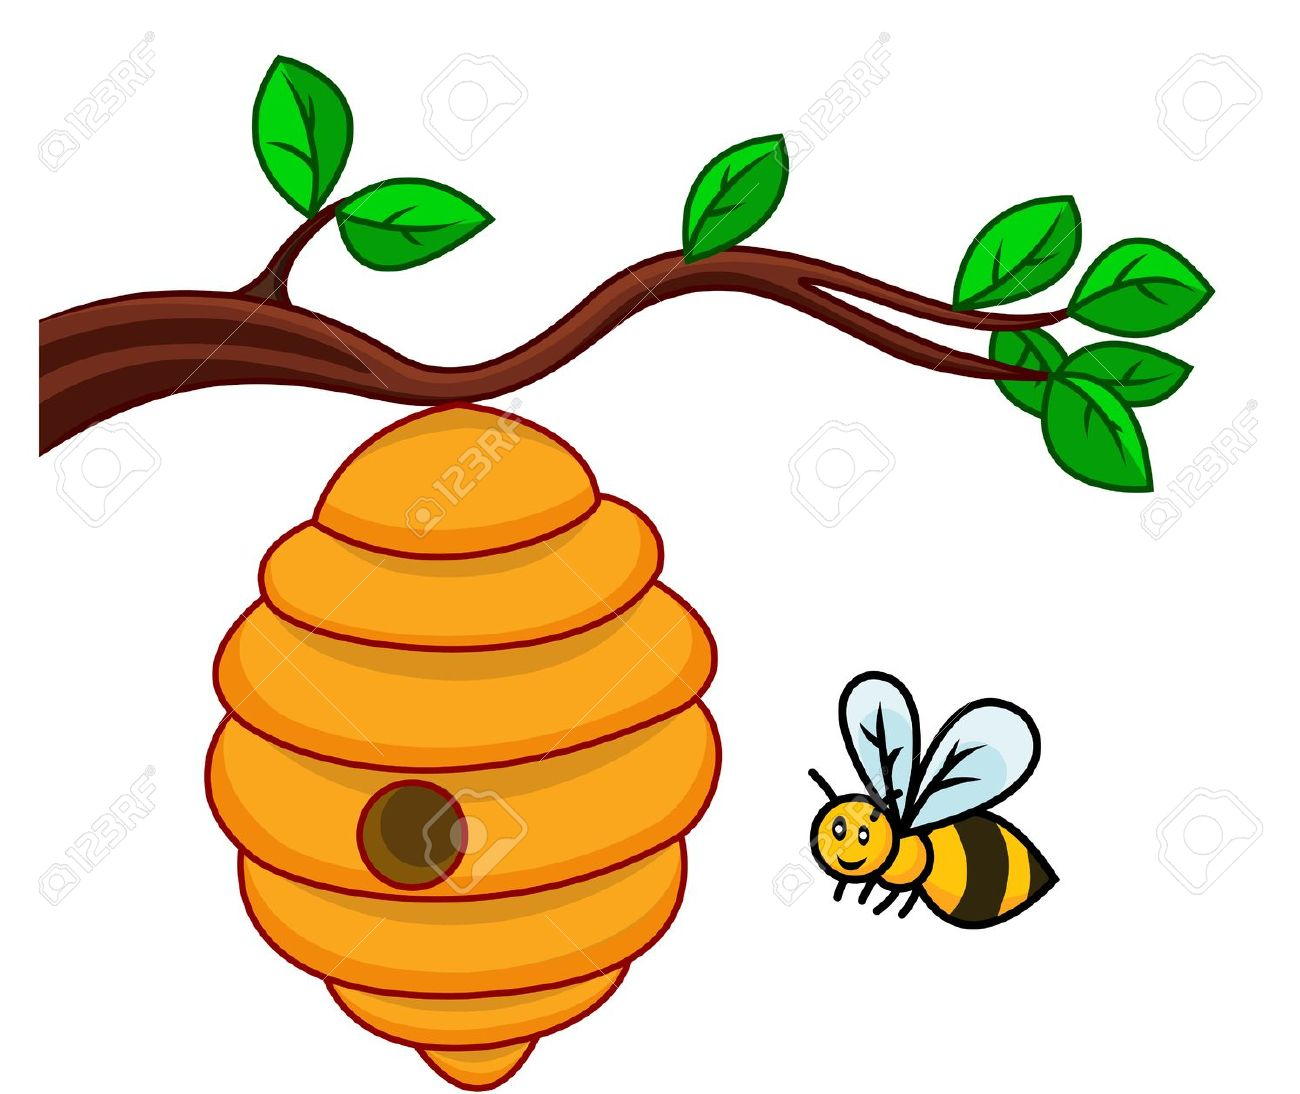 Beehive Clipart. Beehive: Illustration O-beehive clipart. beehive: illustration of .-10